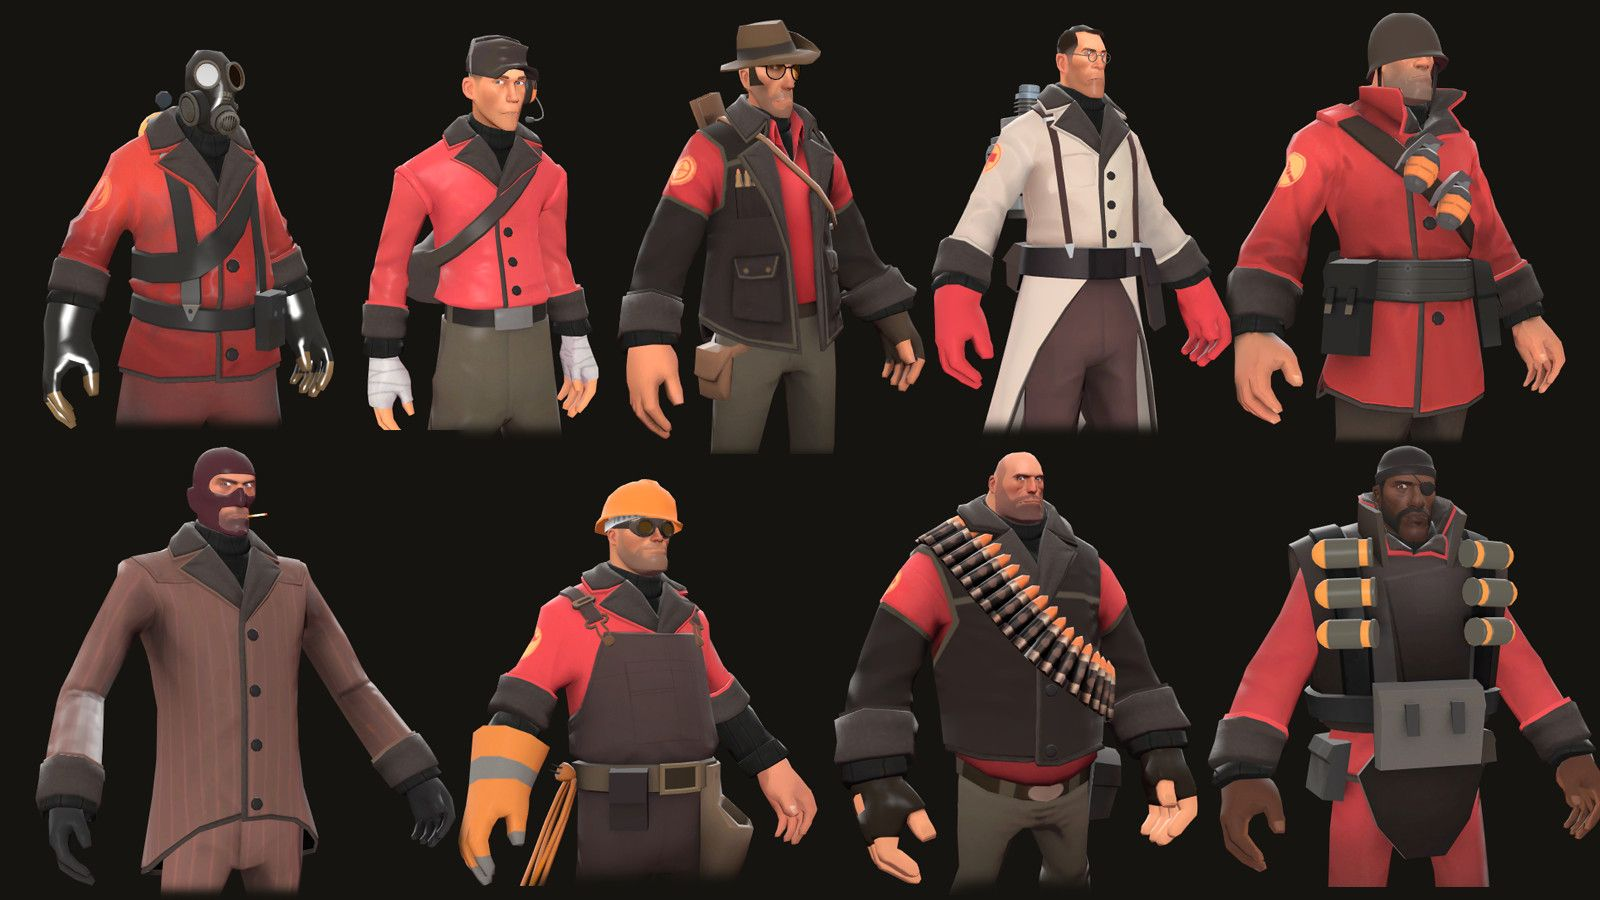 Medic :: The Uber-Wear (With images)   Team fortress 2